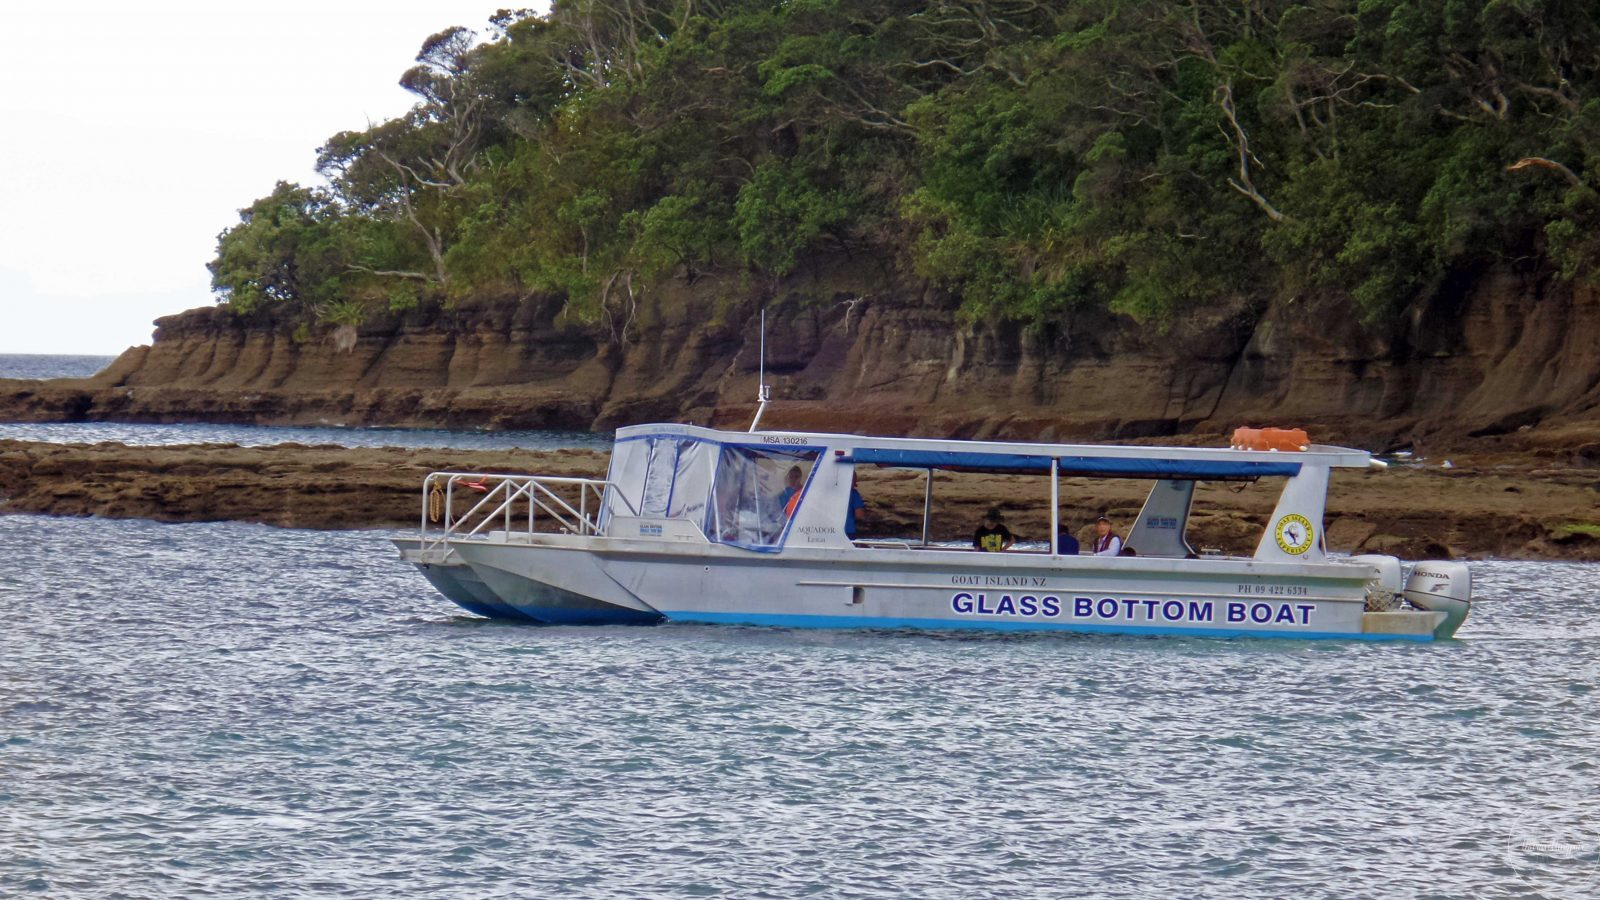 Glass Bottom Boat in Goat Island